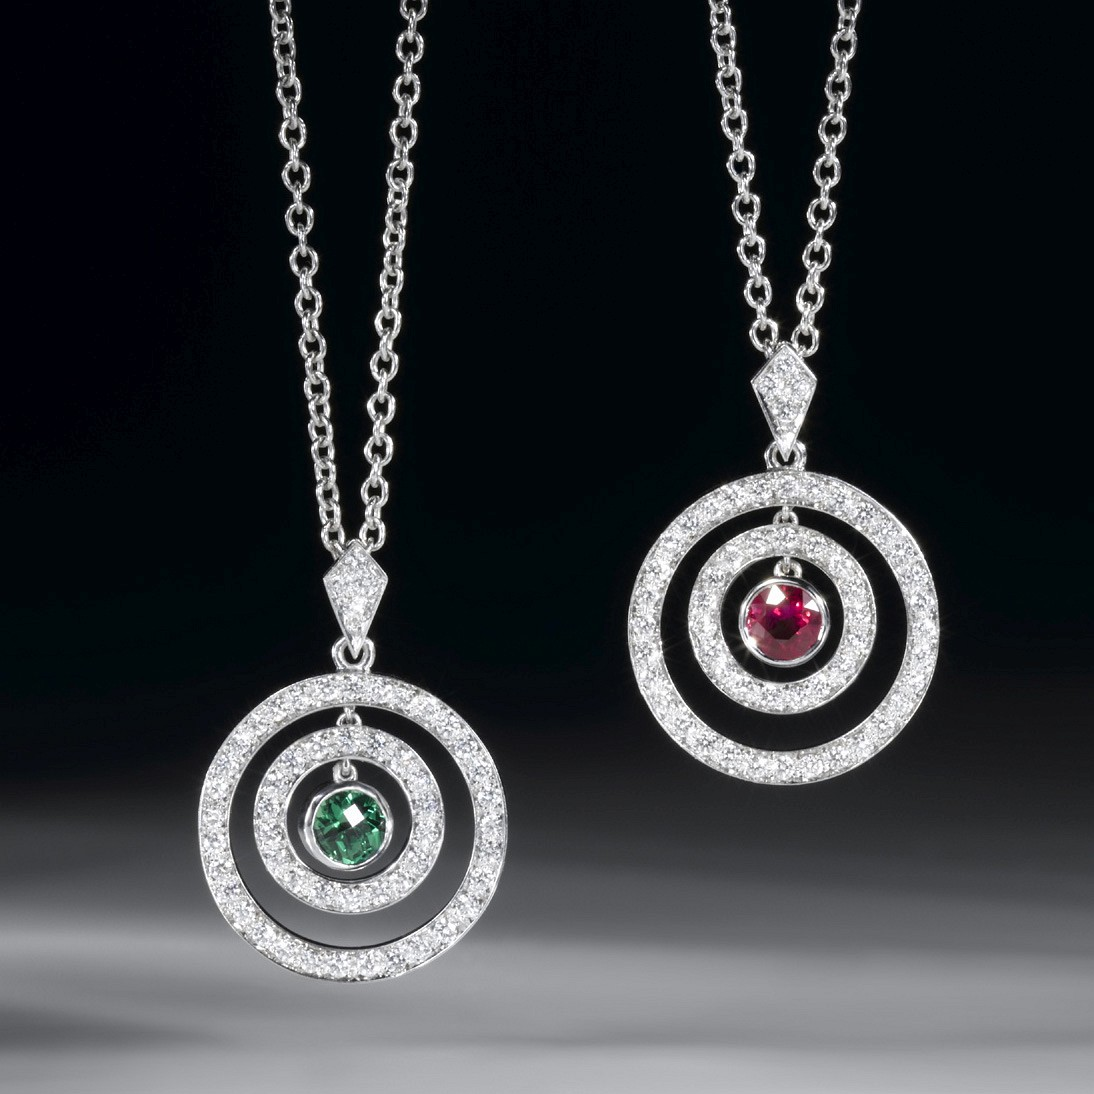 CIRCLE PENDANTS: RUBY & DIAMOND. TSAVORITE GARNET & DIAMOND